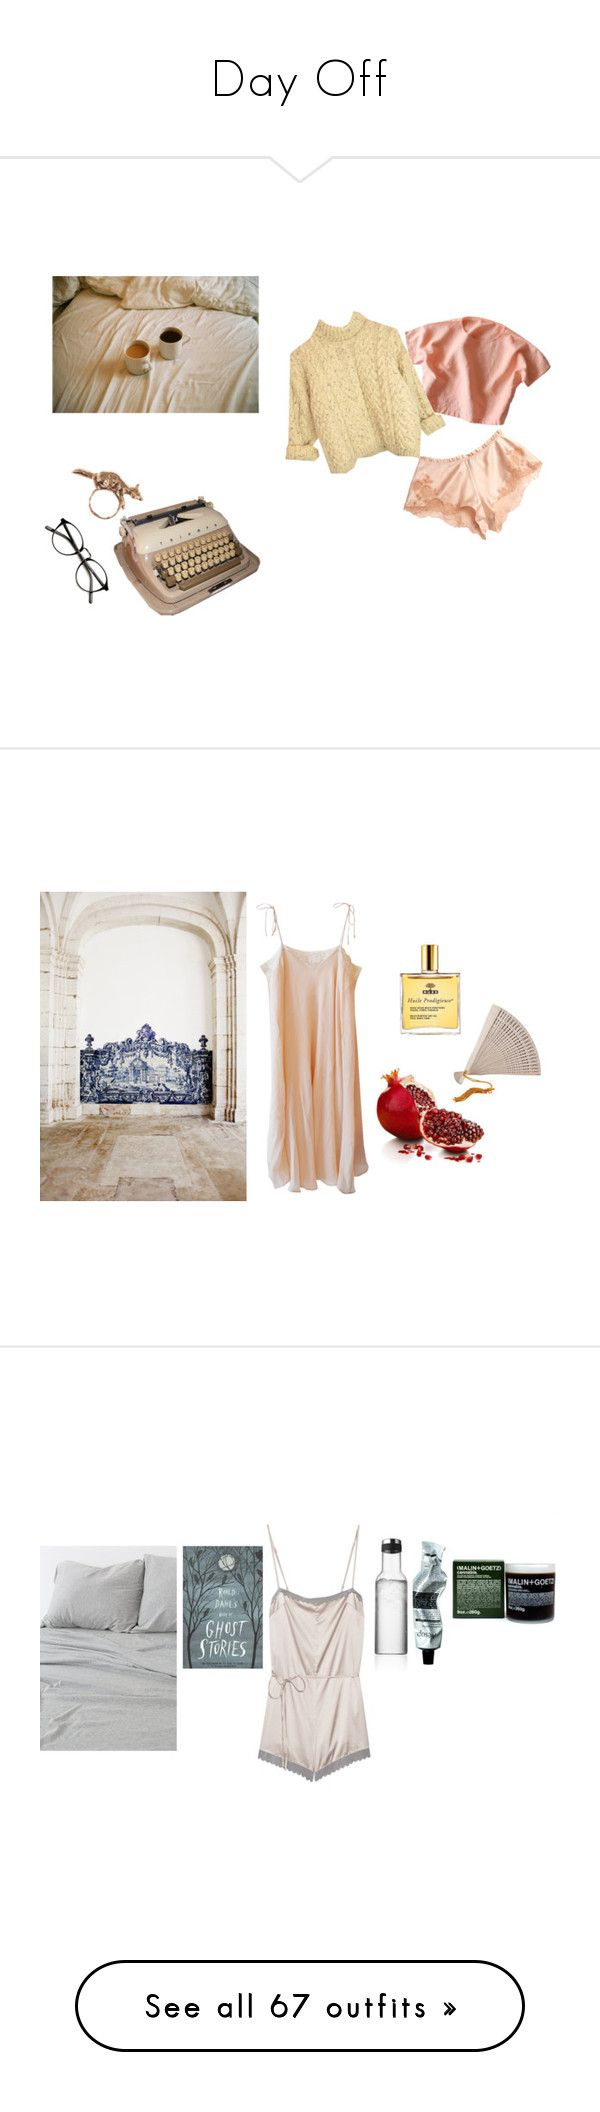 """""""Day Off"""" by yanghaizi ❤ liked on Polyvore featuring N'Est Pas, Carine Gilson, By Emily, Mes Demoiselles..., Nuxe, Pier 1 Imports, Noodle, Menu, Aesop and STELLA McCARTNEY"""